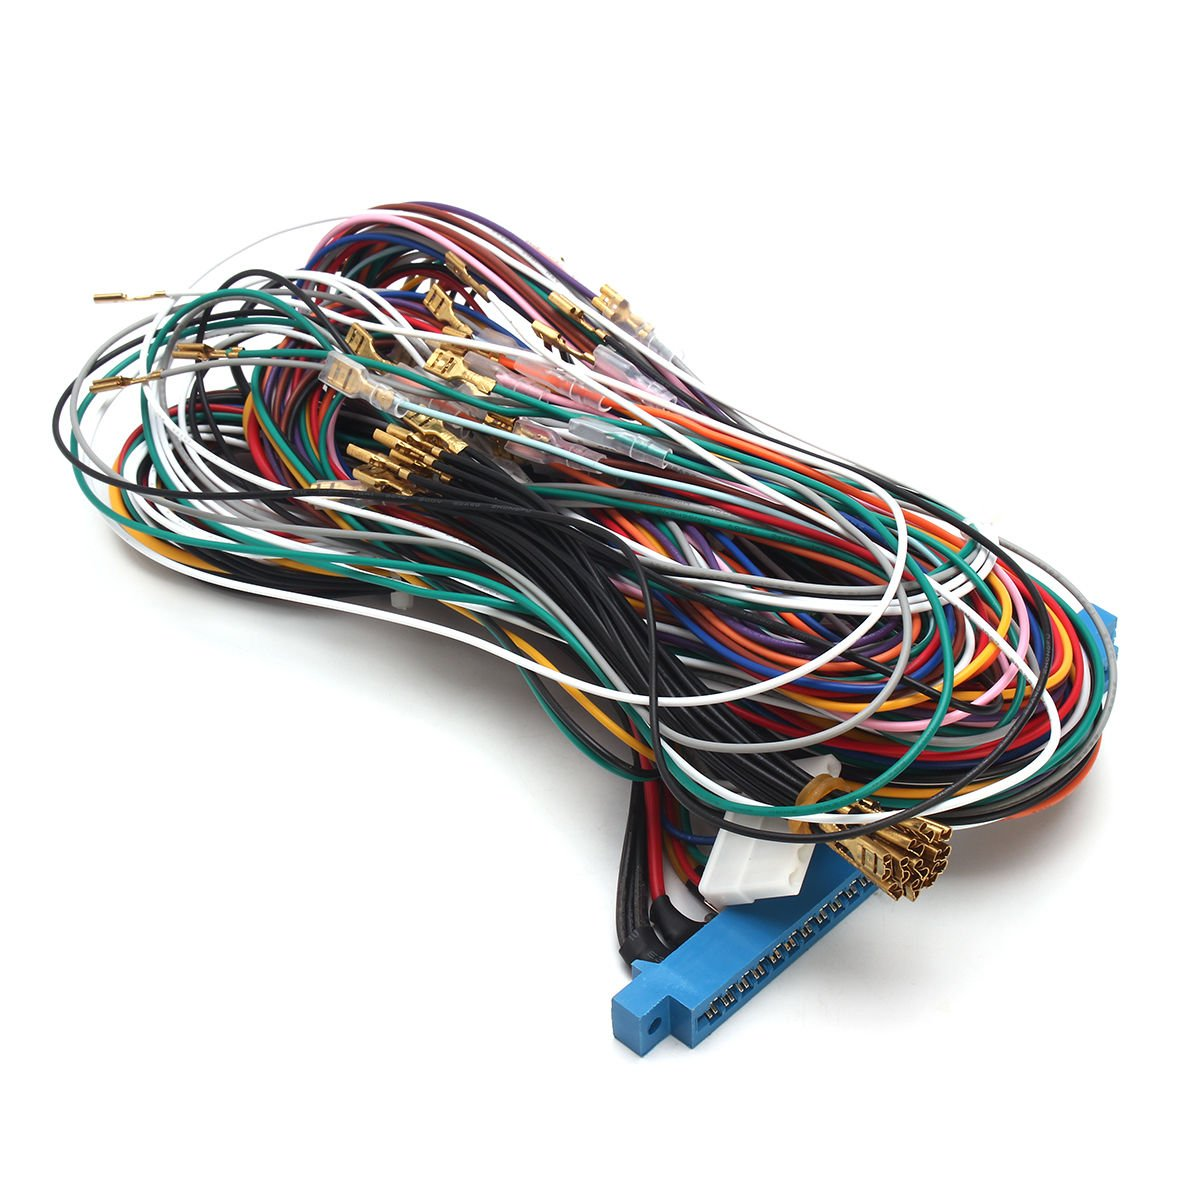 28 Pins Jamma Harness Cabinet Wire Wiring Loom For 7 Pin Difference Arcade Game Pcb Video Board By Atomic Market Toys Games